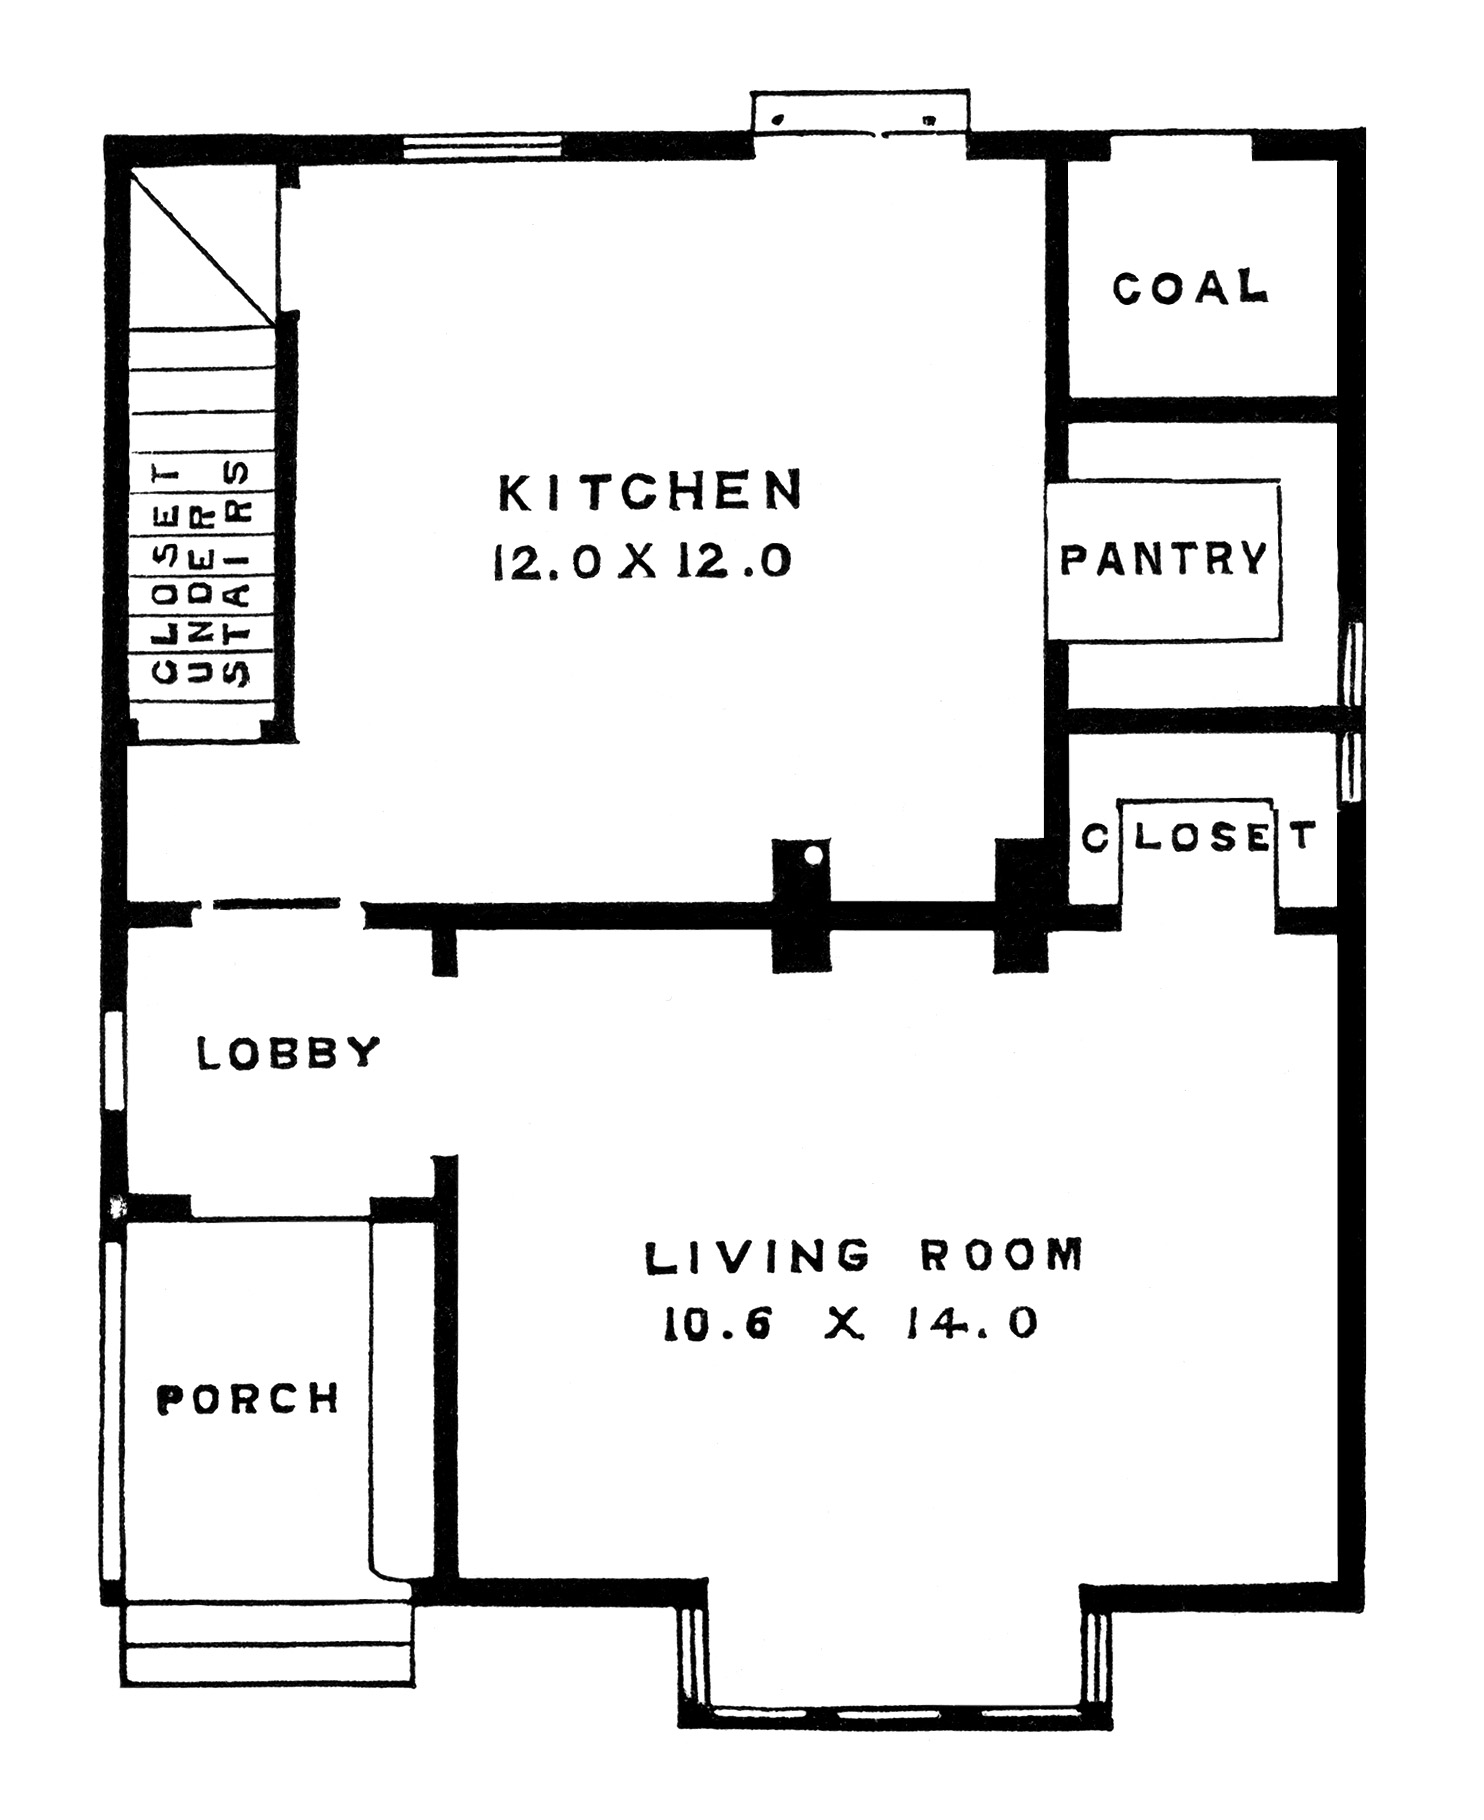 Two story victorian cottage free clip art image old for Two story victorian house plans